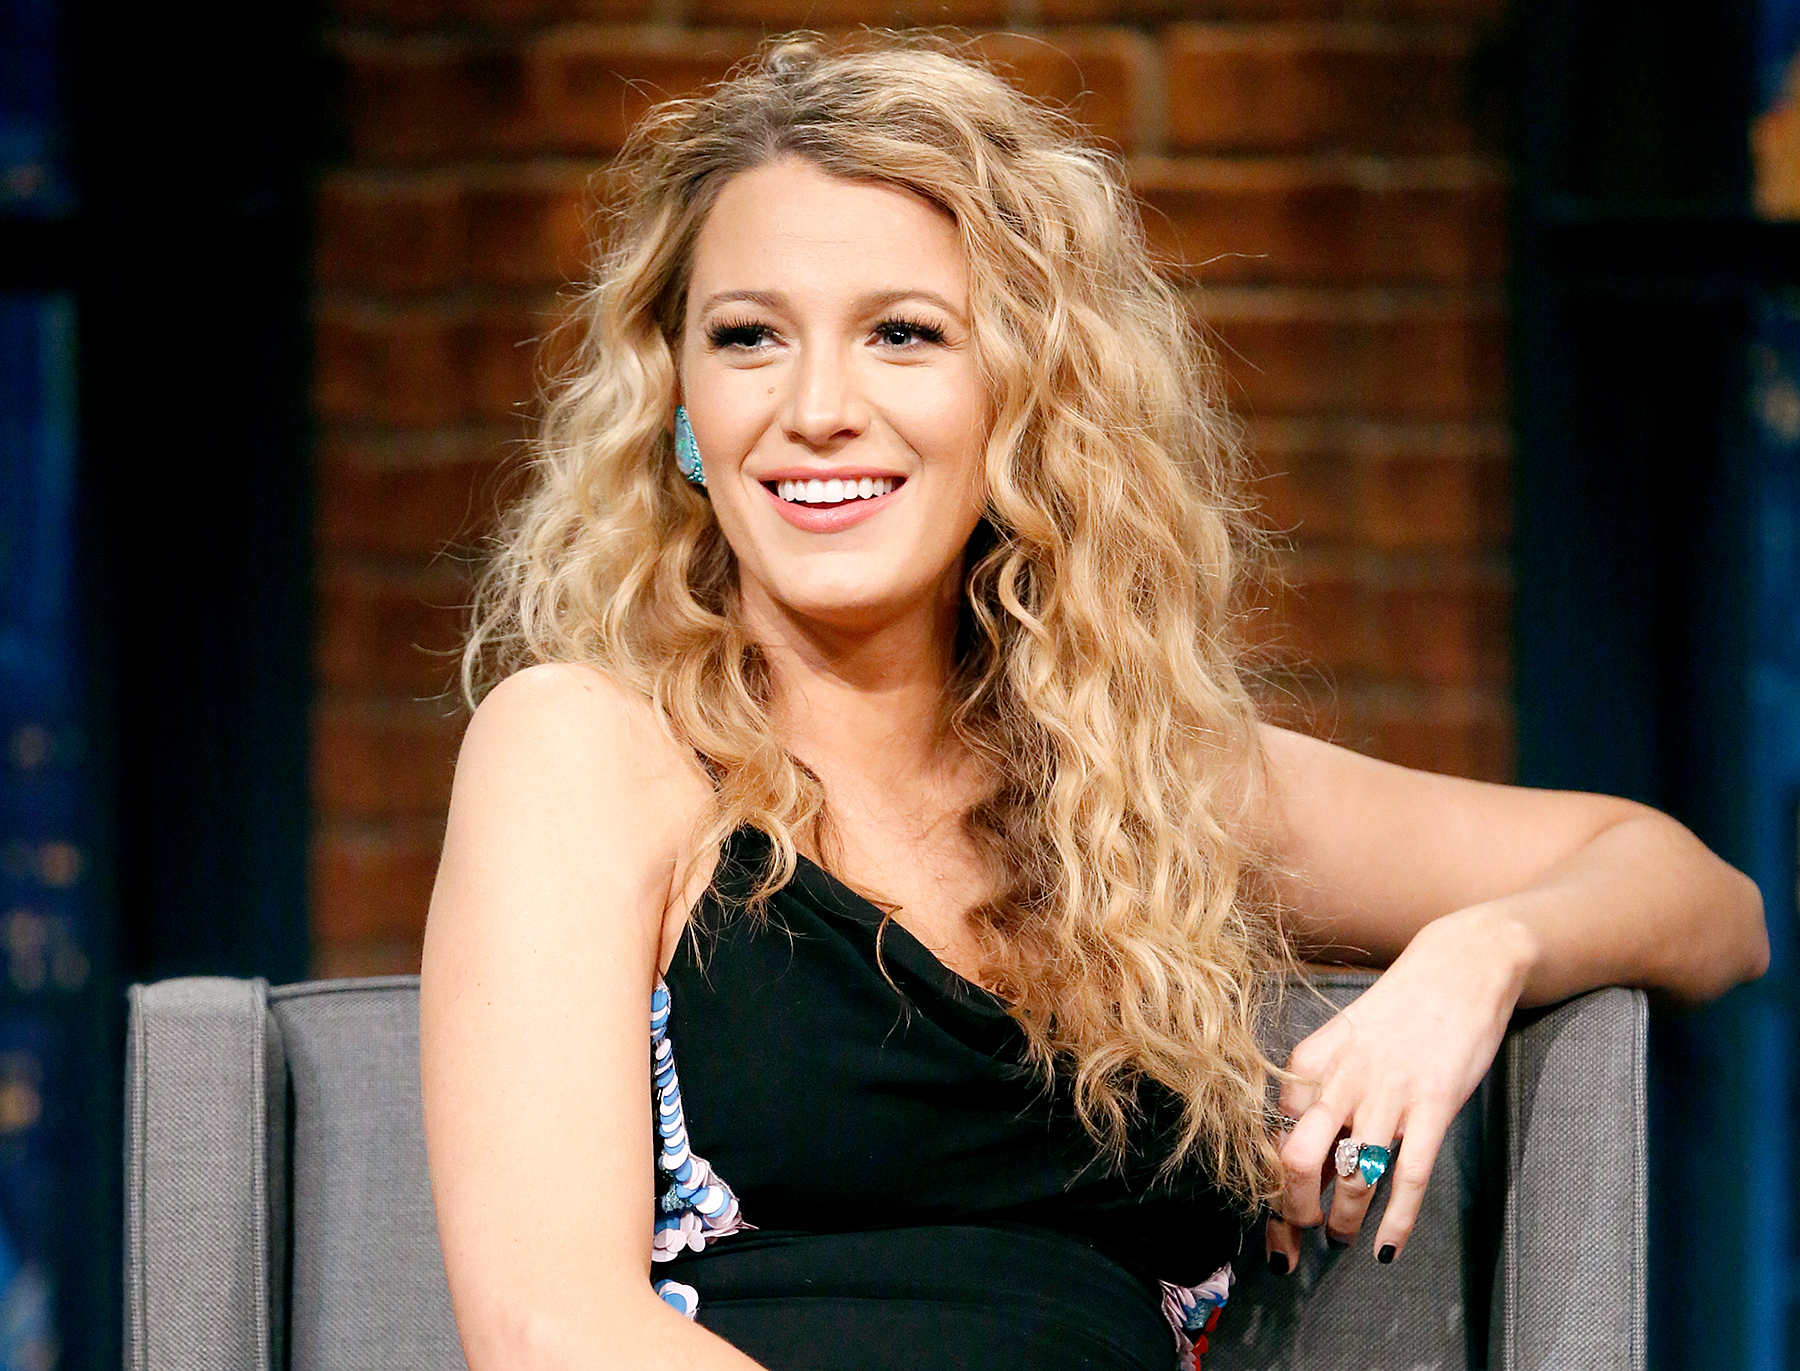 Pregnant Blake Lively Styles Hair Into 80s Era Perm Curls